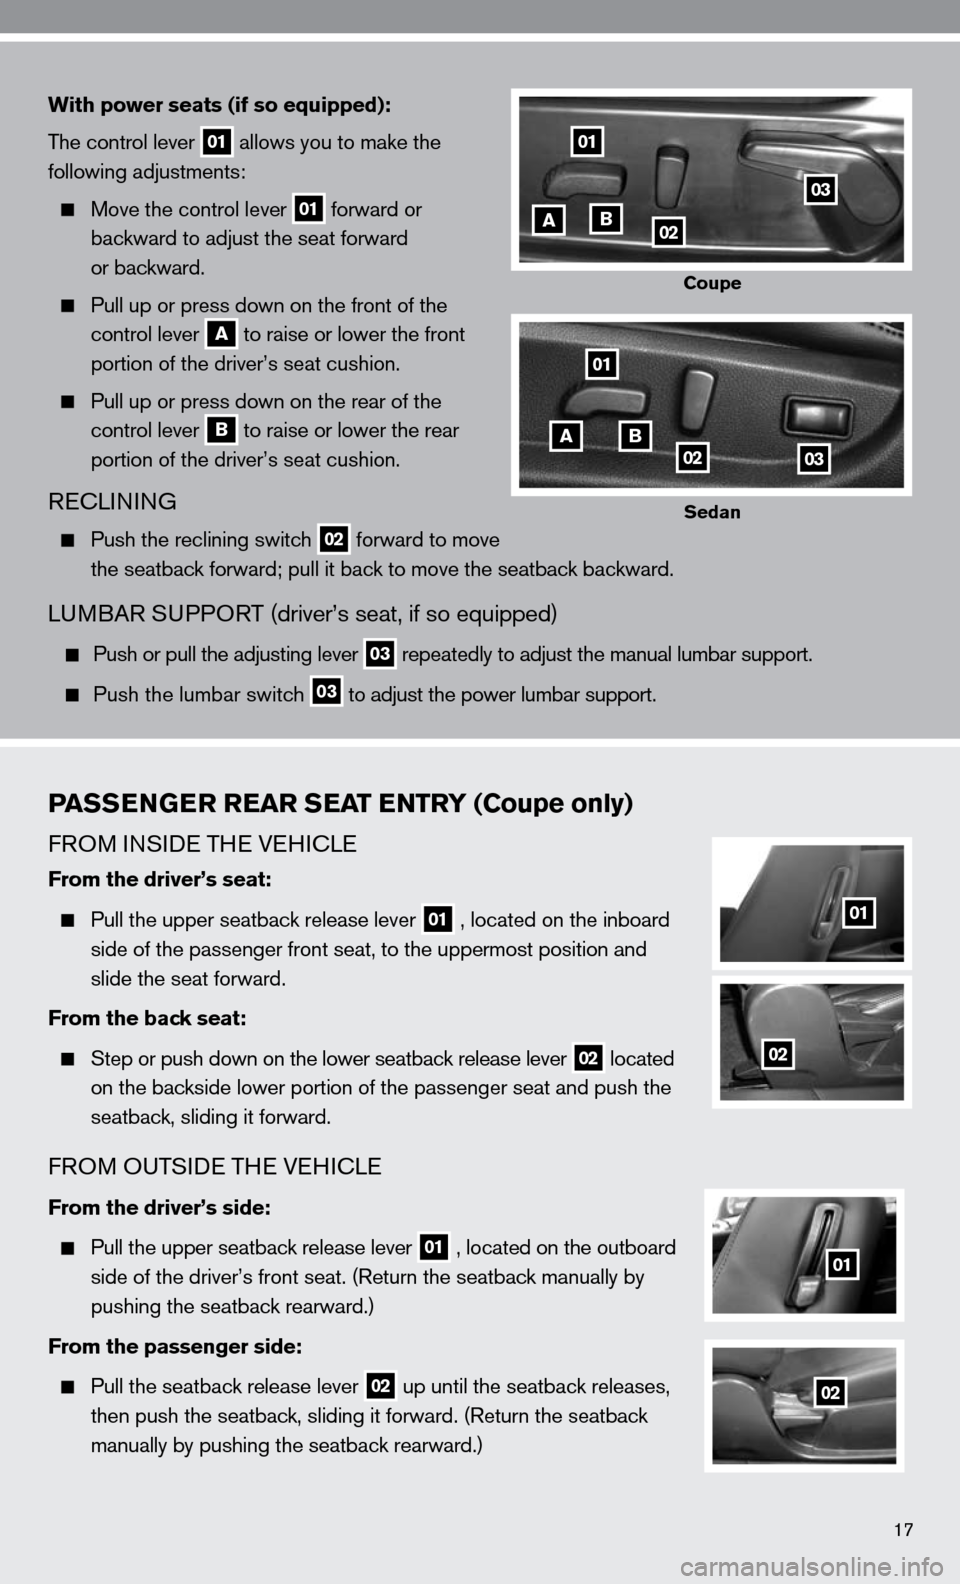 NISSAN ALTIMA COUPE 2010 D32 / 4.G Quick Reference Guide 17 PASSENGER REAR SEAT ENTRY (Coupe only)  fROM in Side TH e VeHic Le From the driver's seat:    Pull the upper seatback release lever 01 , located on the inboard      side of the passenger front se